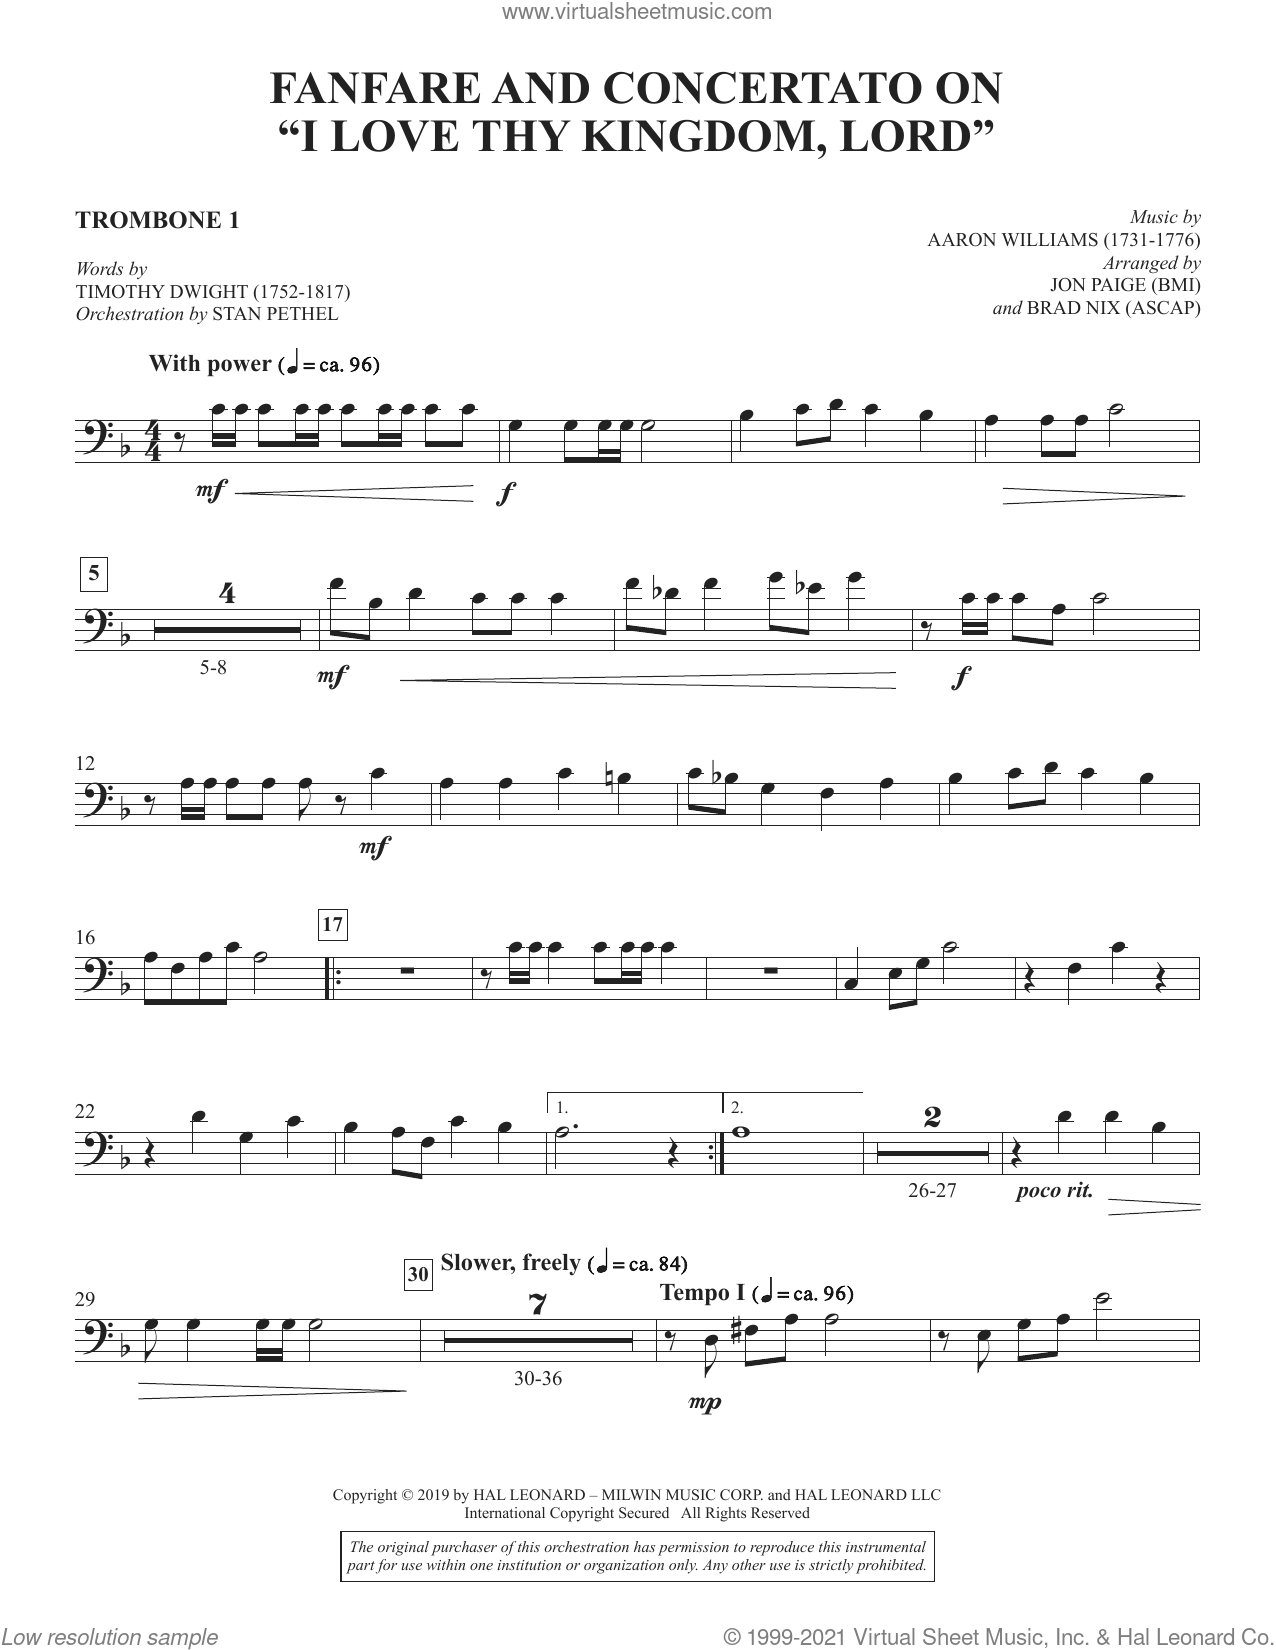 Fanfare and Concertato on 'I Love Thy Kingdom, Lord' (arr. Jon Paige and Brad Nix) sheet music for orchestra/band (trombone 1) by Timothy Dwight, Brad Nix and Jon Paige, intermediate skill level